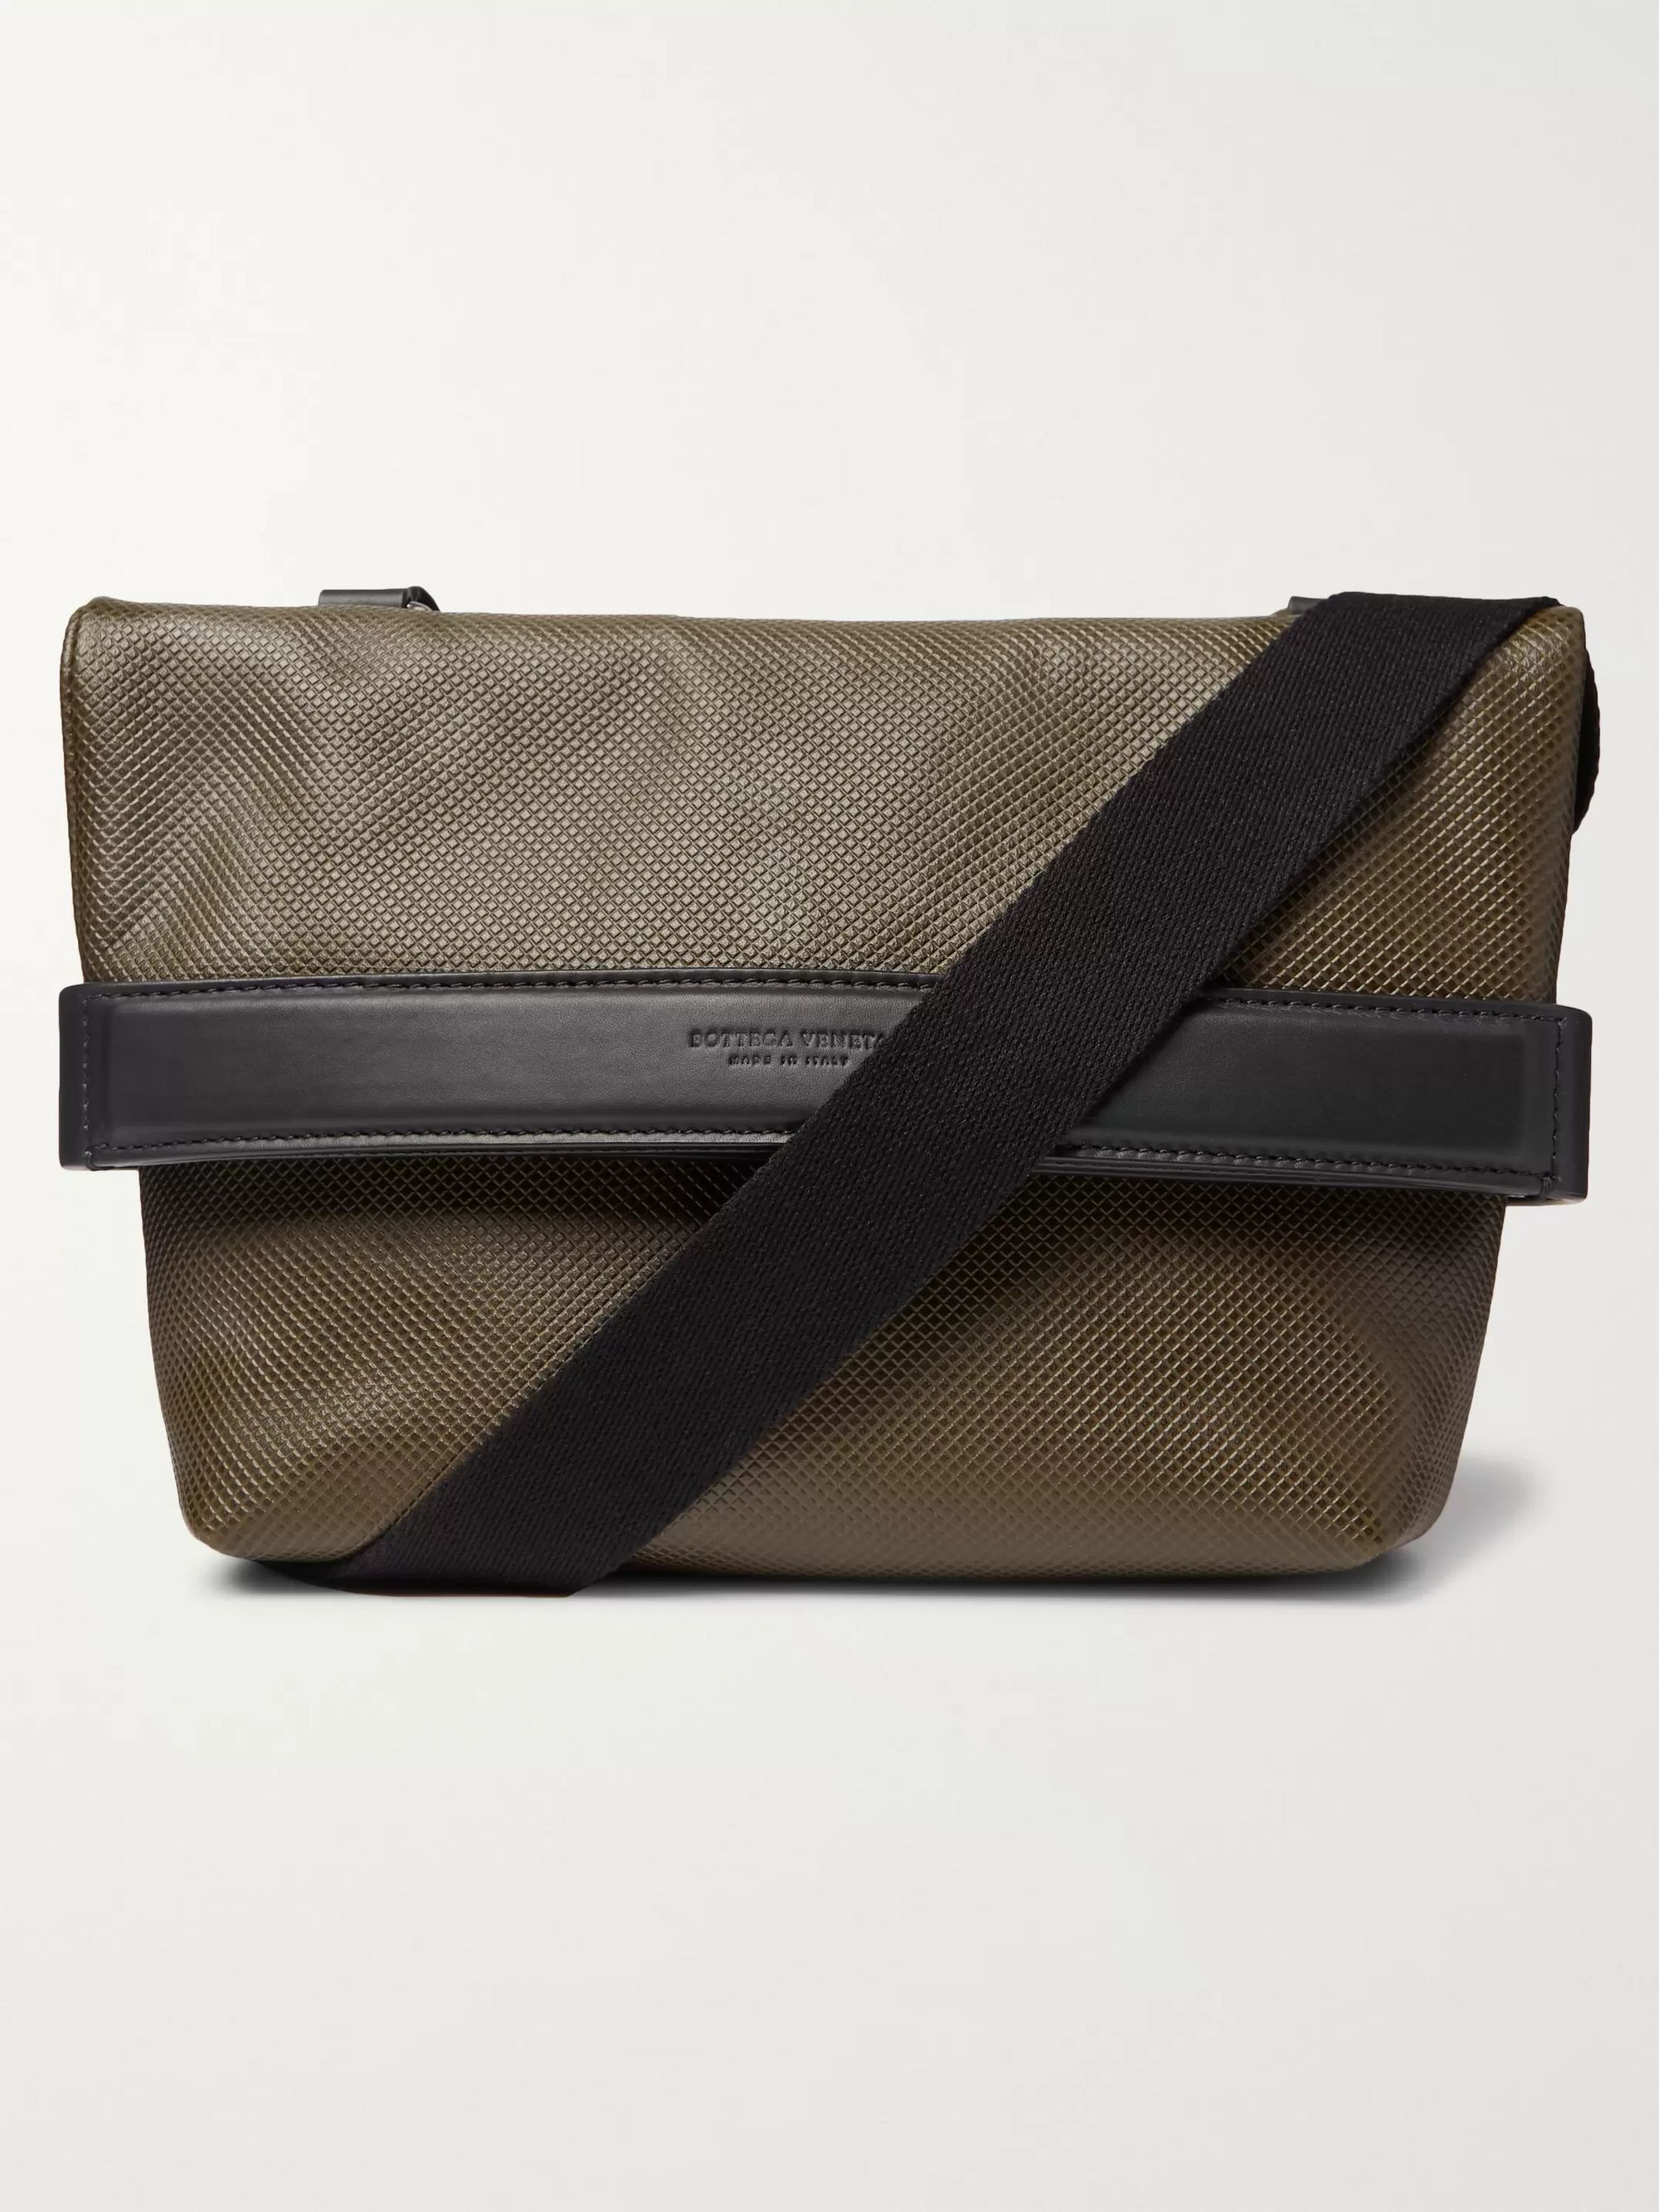 Bottega Veneta Textured-Leather Messenger Bag